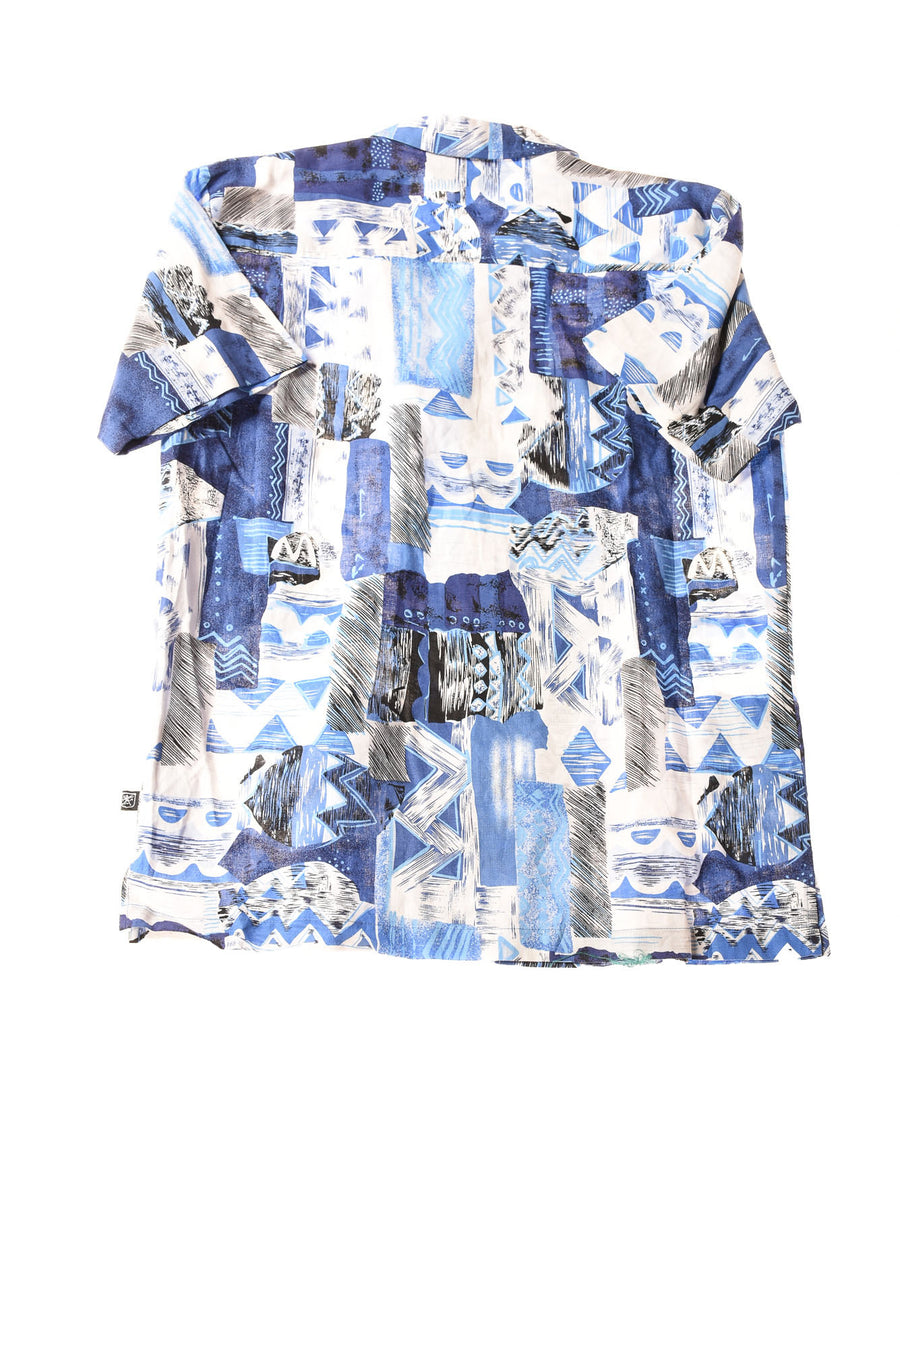 USED Stacy Adams Men's Shirt Medium Blue / Print